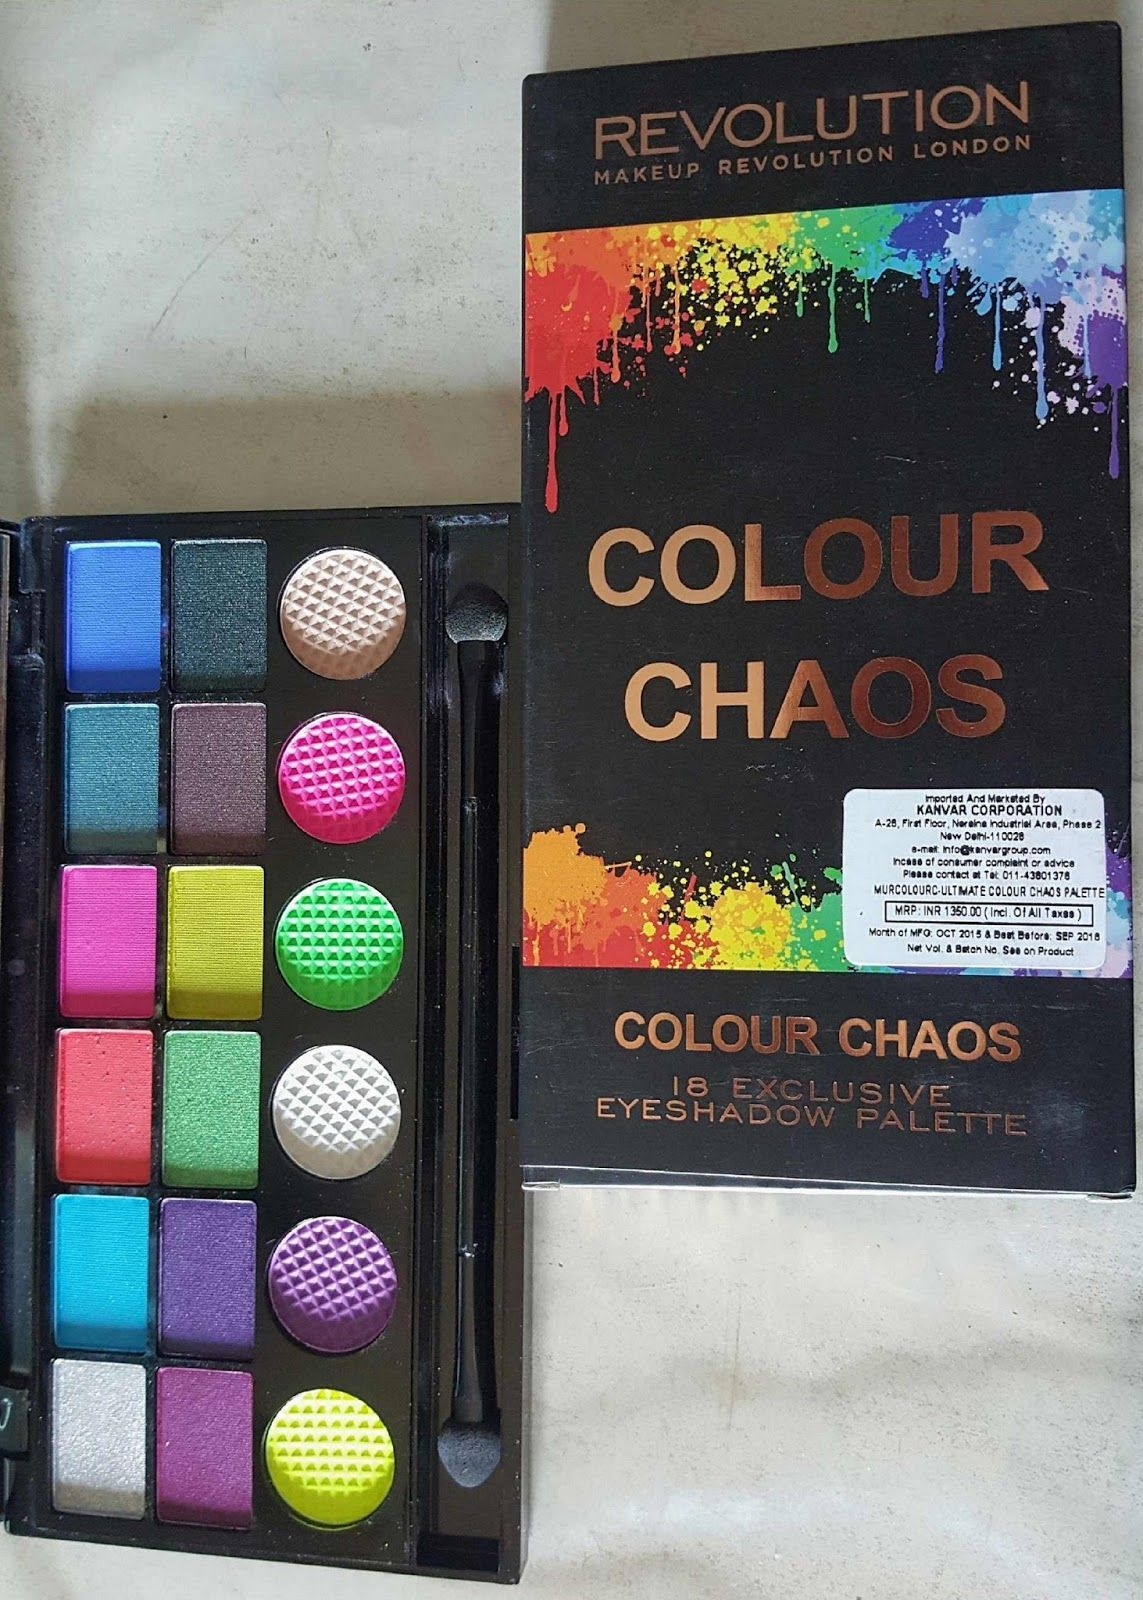 Its Silky MAKEUP REVOLUTION LONDON COLOUR CHAOS EYESHADOW